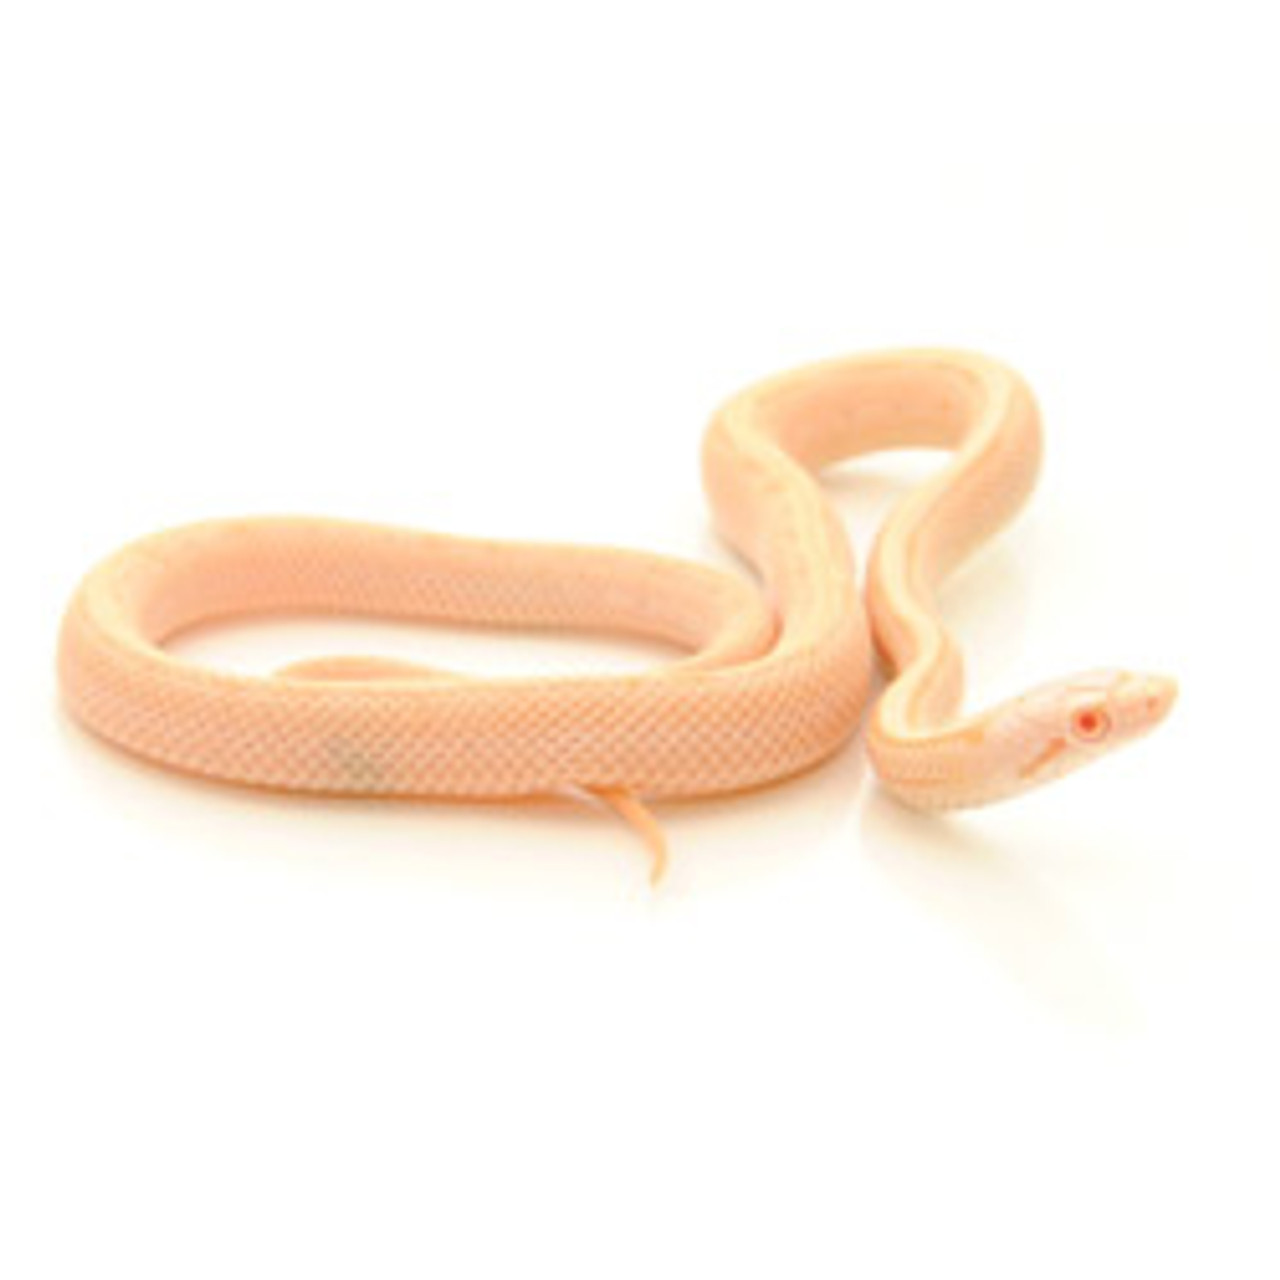 Albino Blotchless Rat Snake (Elaphe obsoleta)